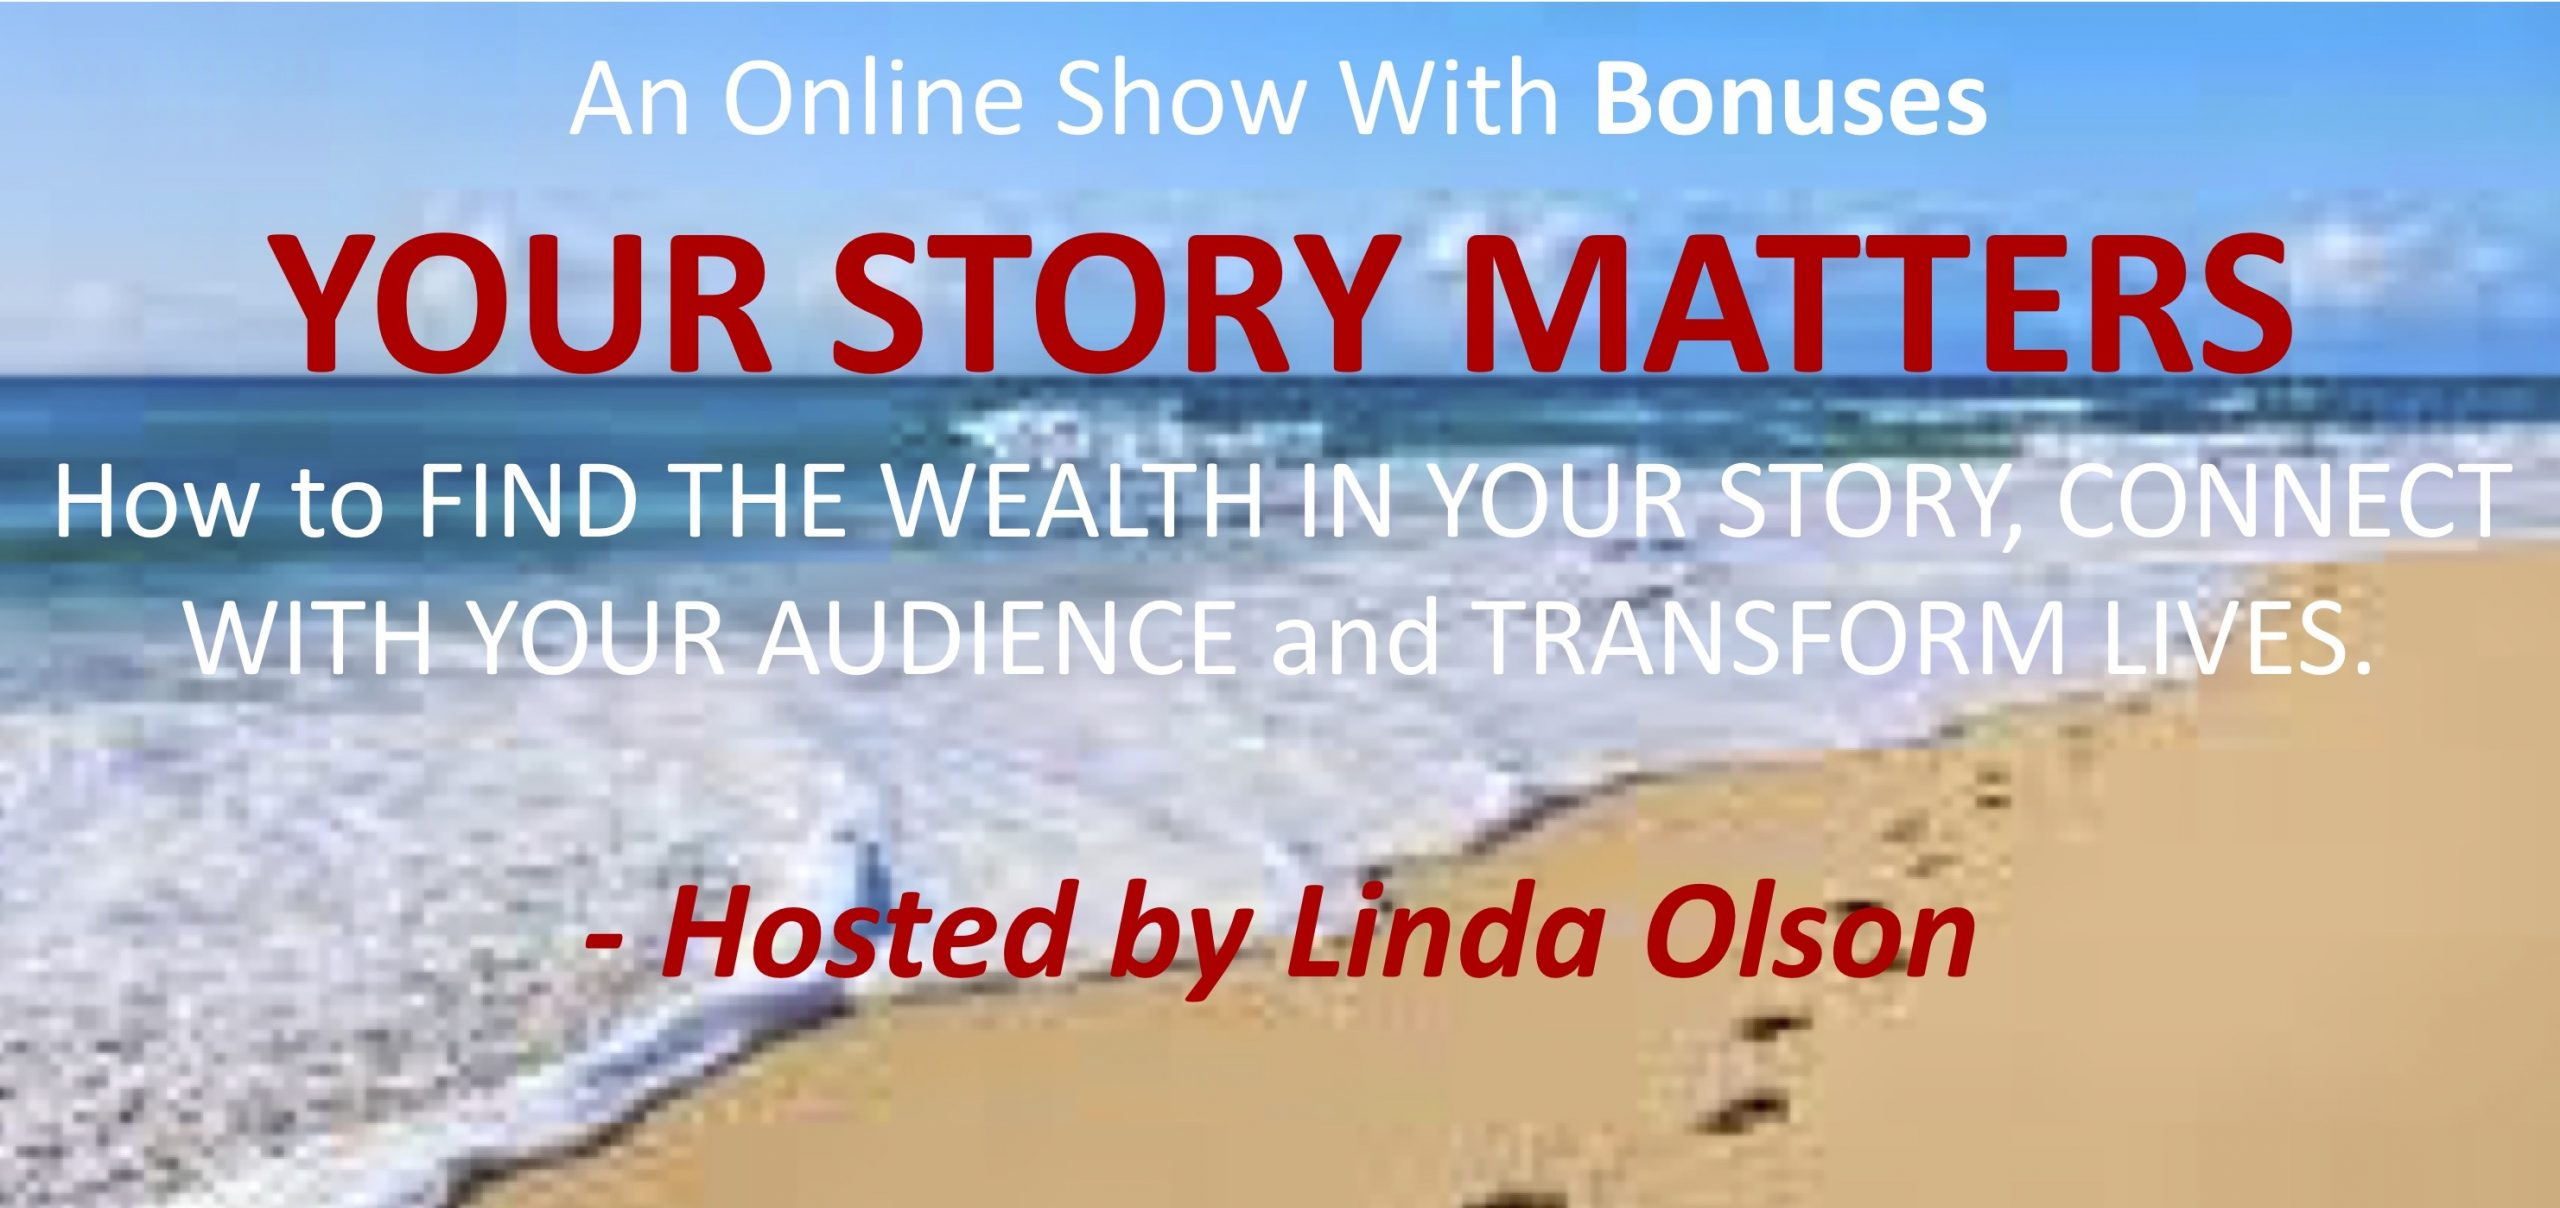 Your Story Matters Online Show January 2019 with Bonuses